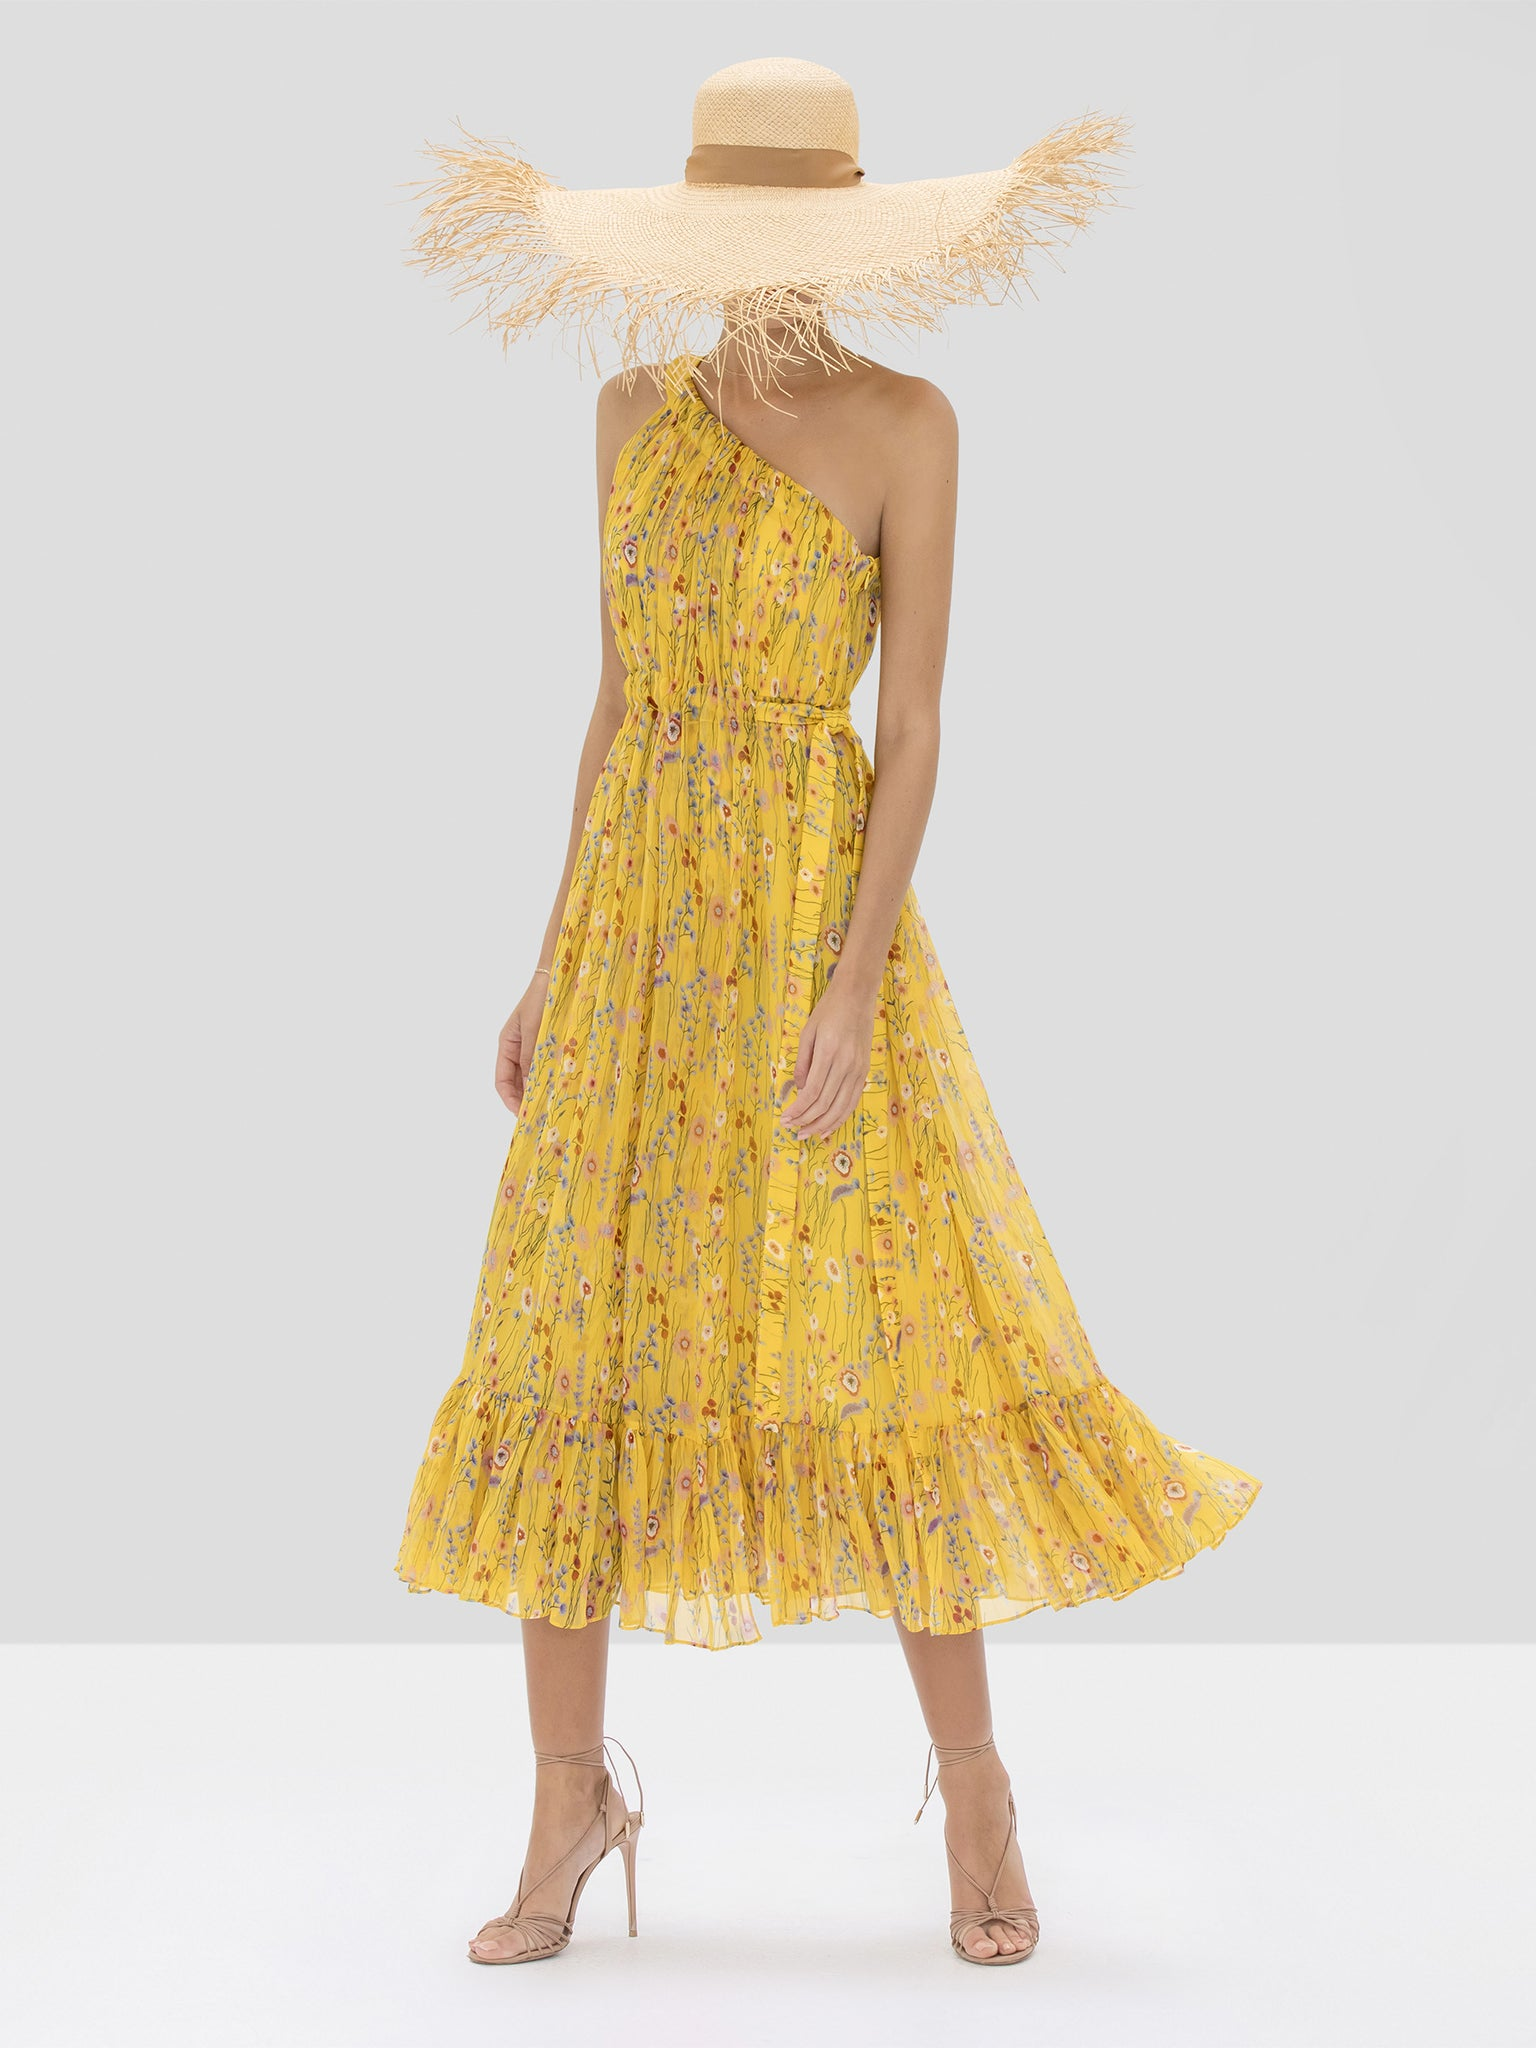 Alexis Teodora Dress in Sunrise Bouquet from Spring Summer 2020 Collection